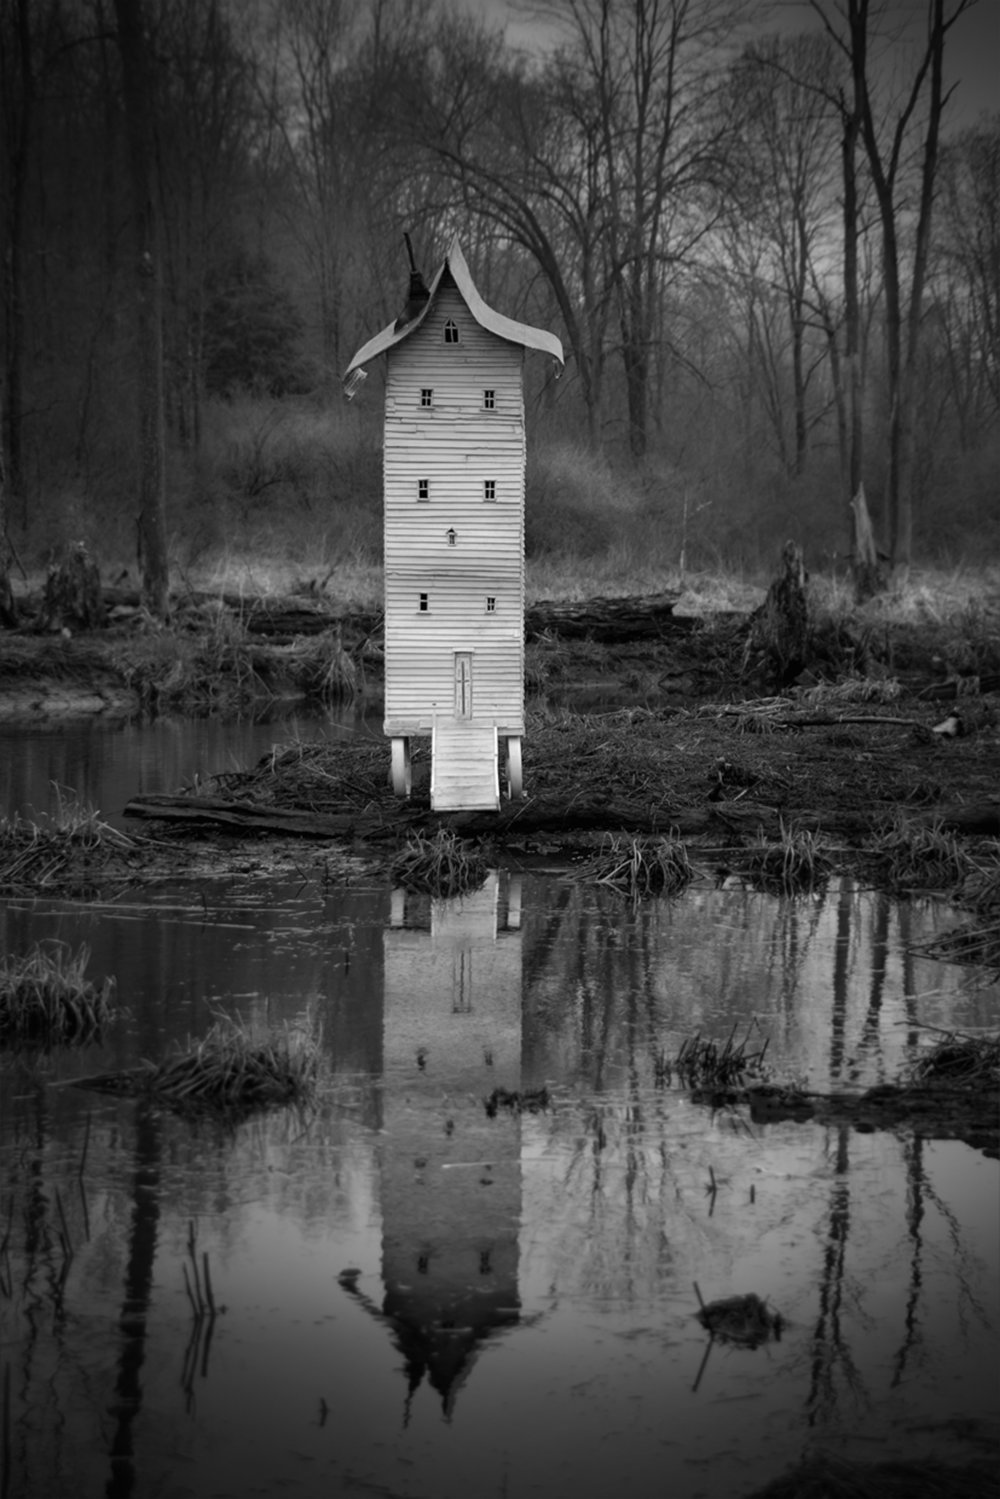 Prayer House, Photograph/Sculpture, Robert Hite, 2006